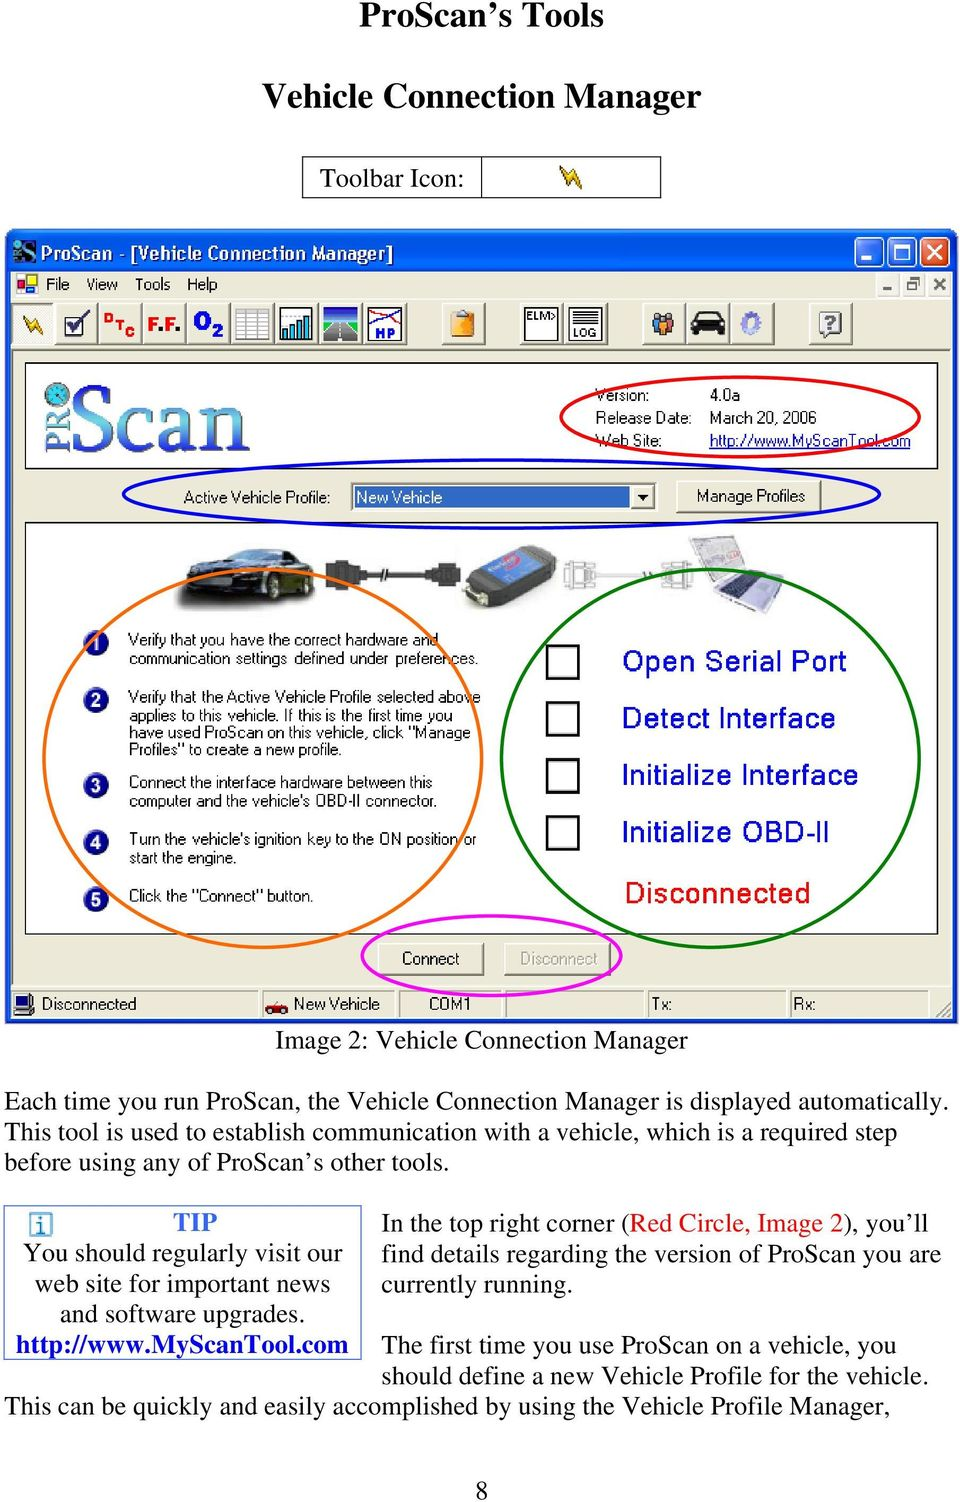 TIP You should regularly visit our web site for important news and software upgrades. http://www.myscantool.